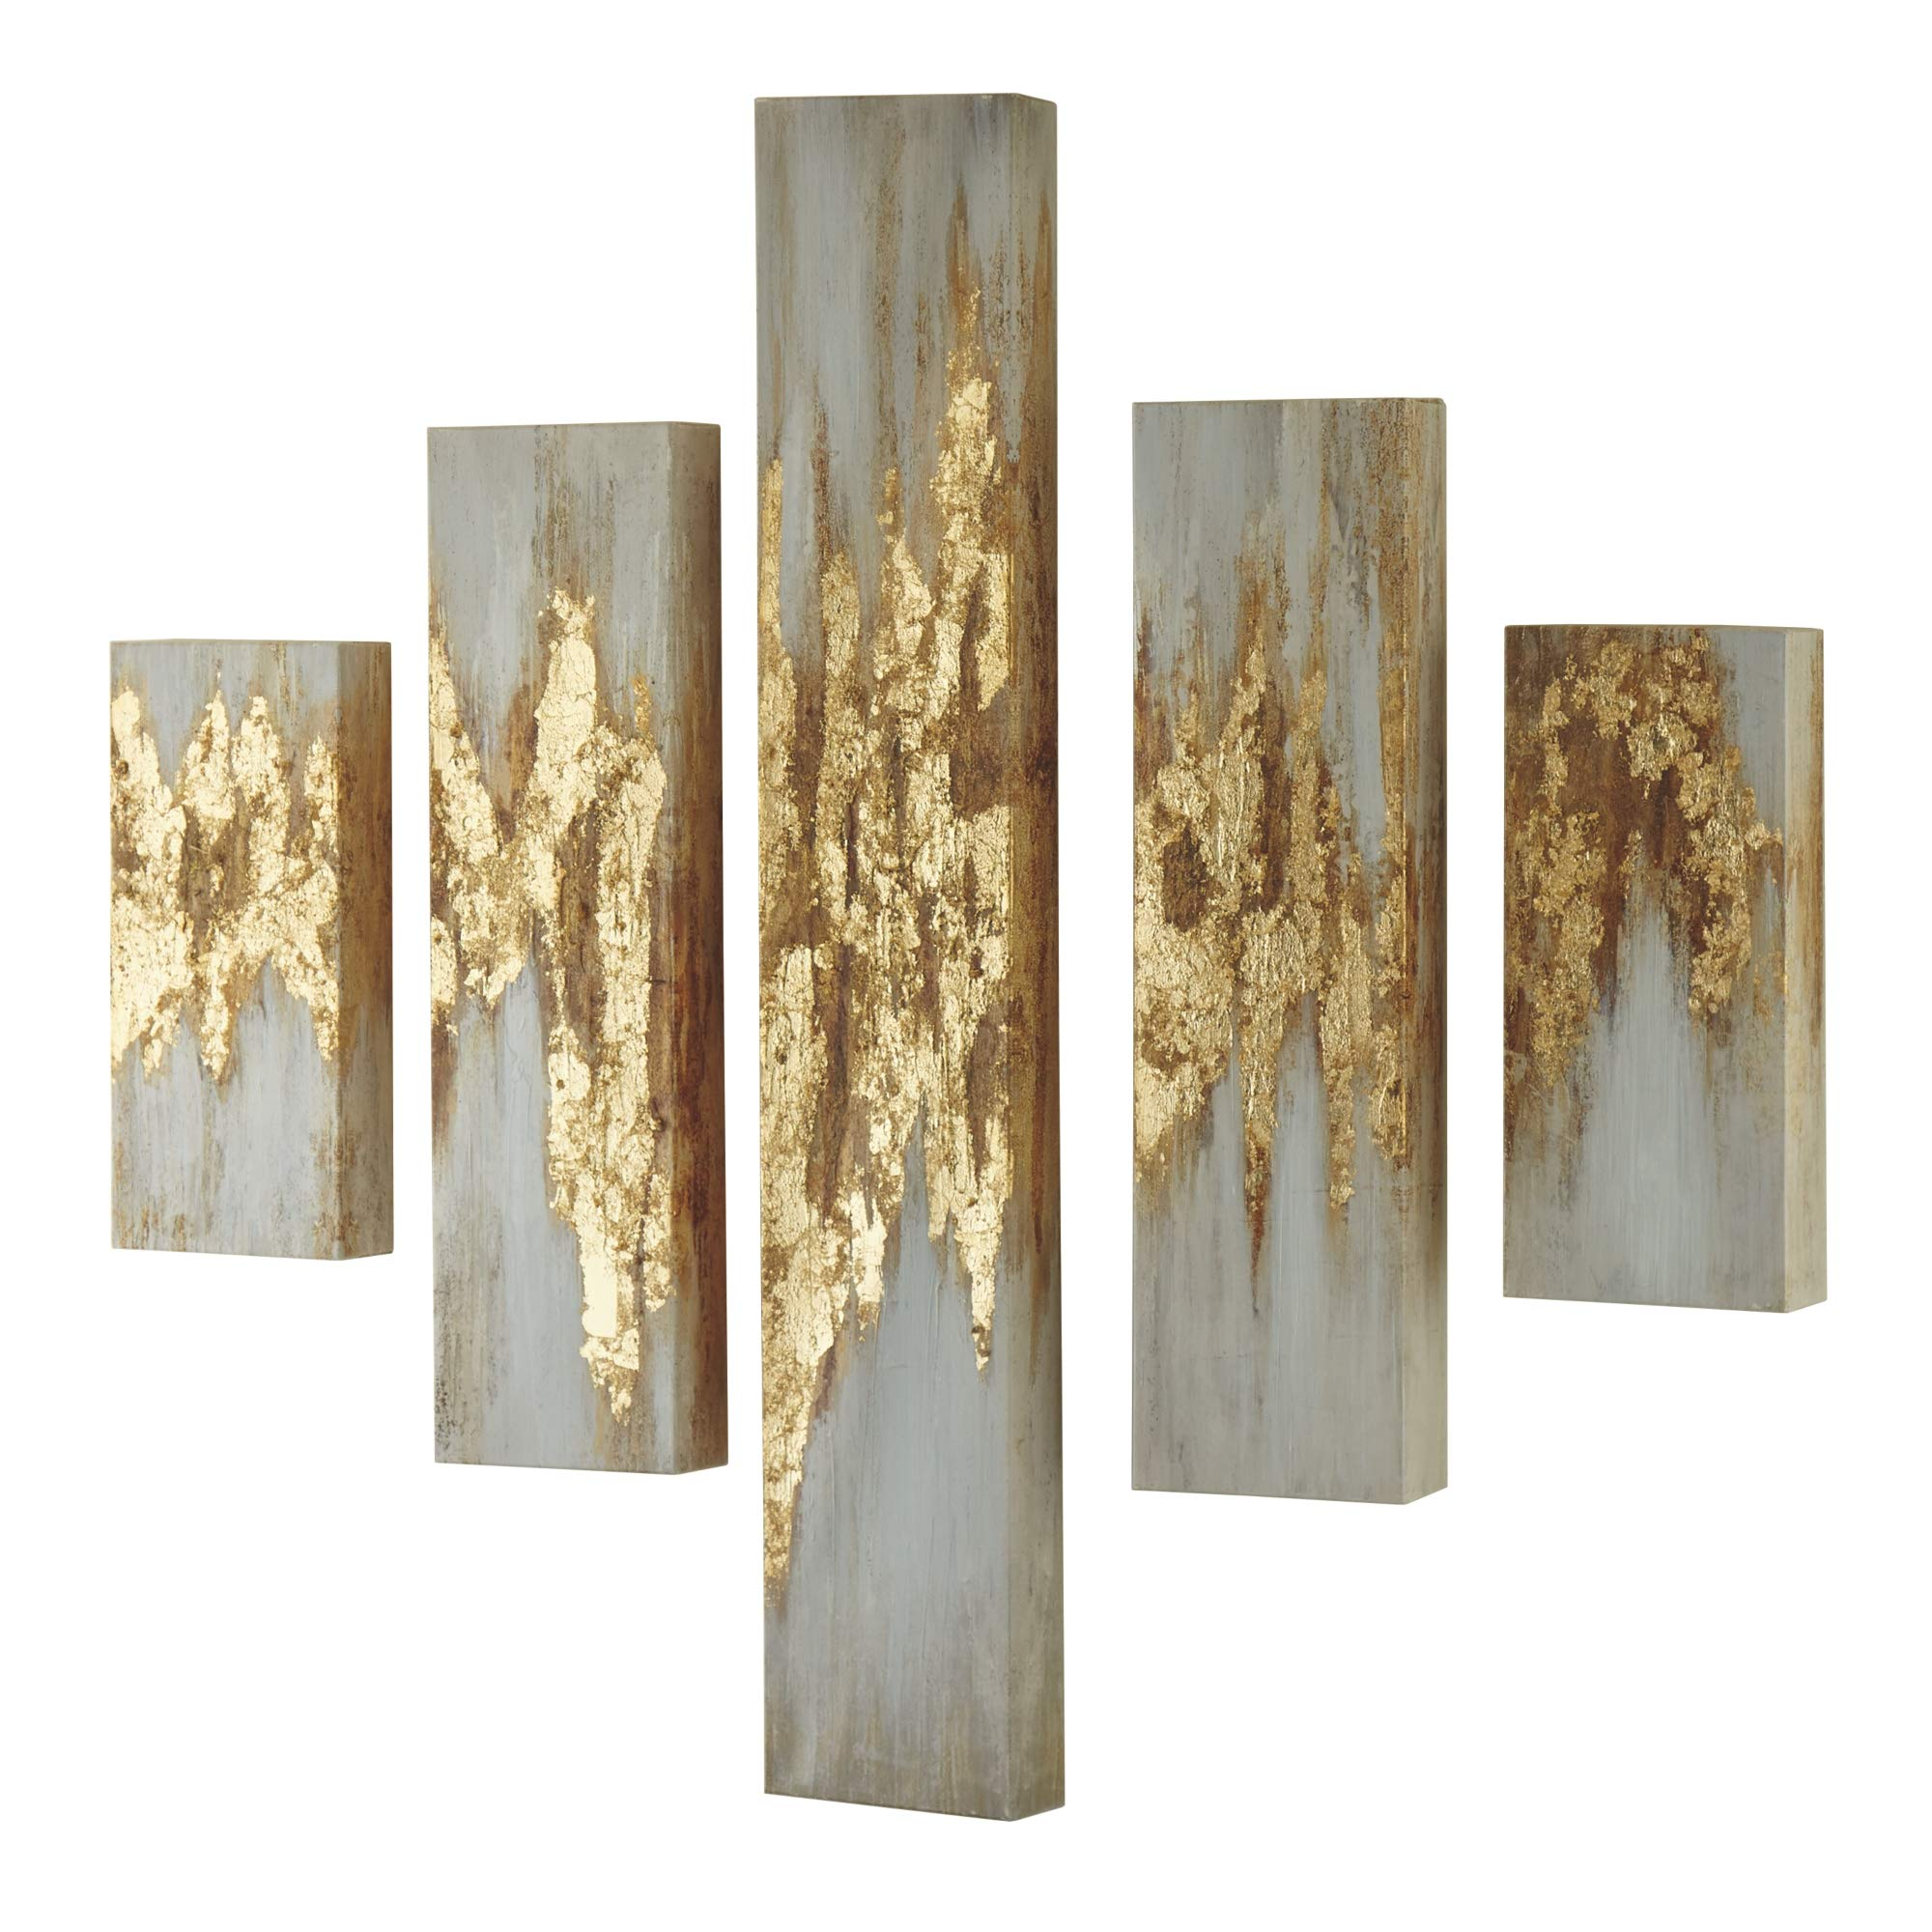 Signature Design by Ashley A8000149 Devlan Set of 5 Wall Art, Gold Finish/White by Signature Design by Ashley